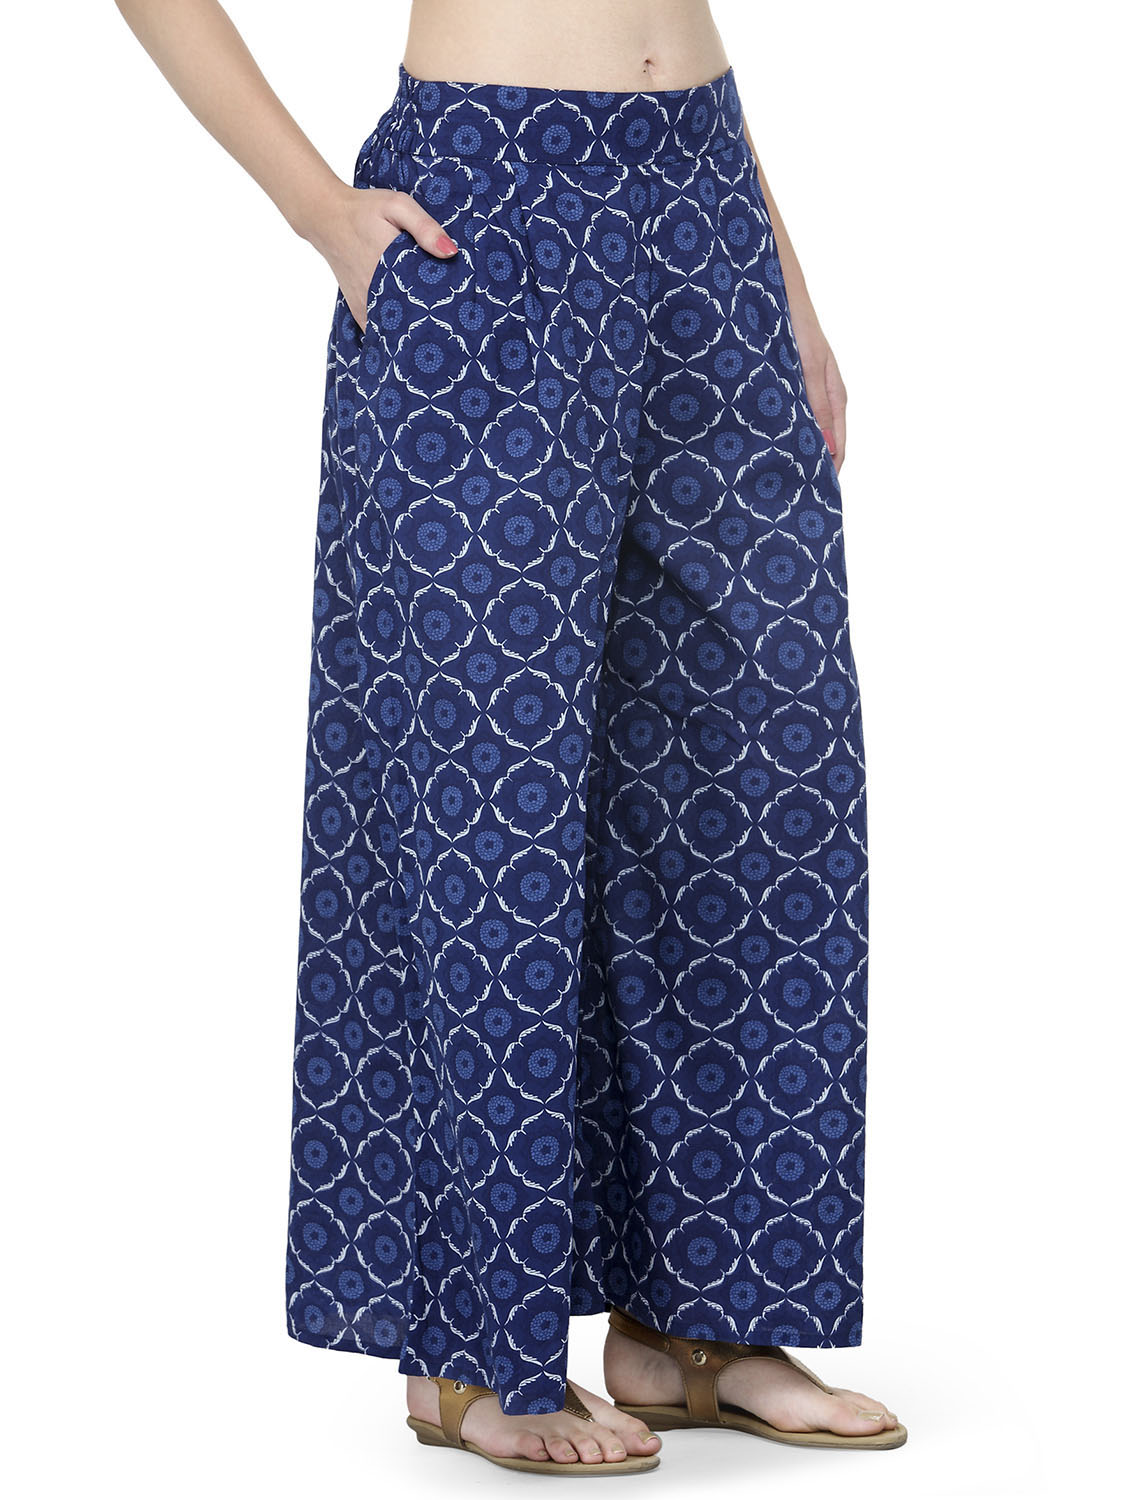 eab7196b1d Buy Blue Printed Cotton Palazzo for Women from Natty India for ₹1225 at 51%  off | 2019 Limeroad.com